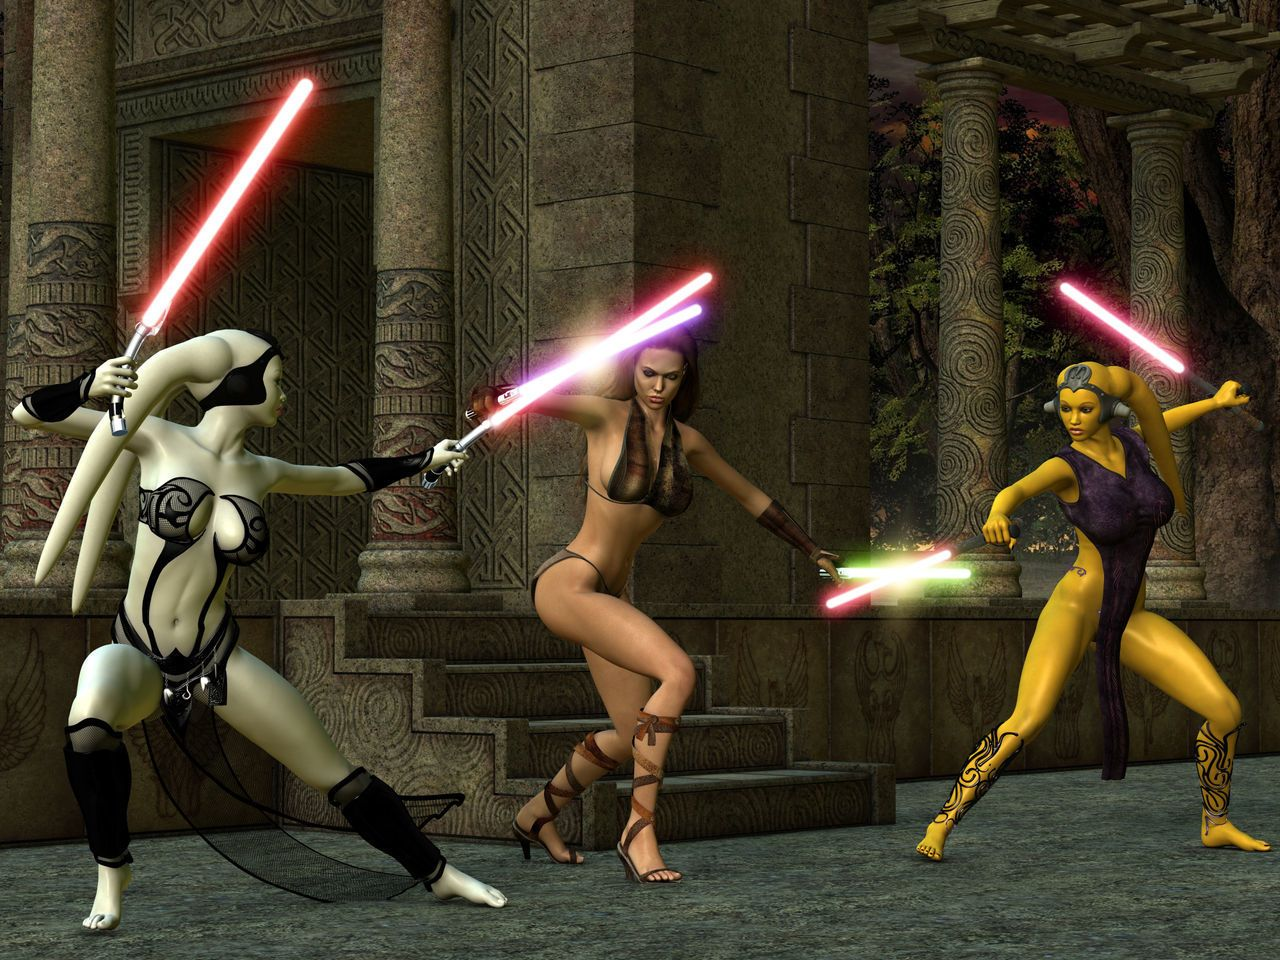 Twi'lek porn videos erotic models